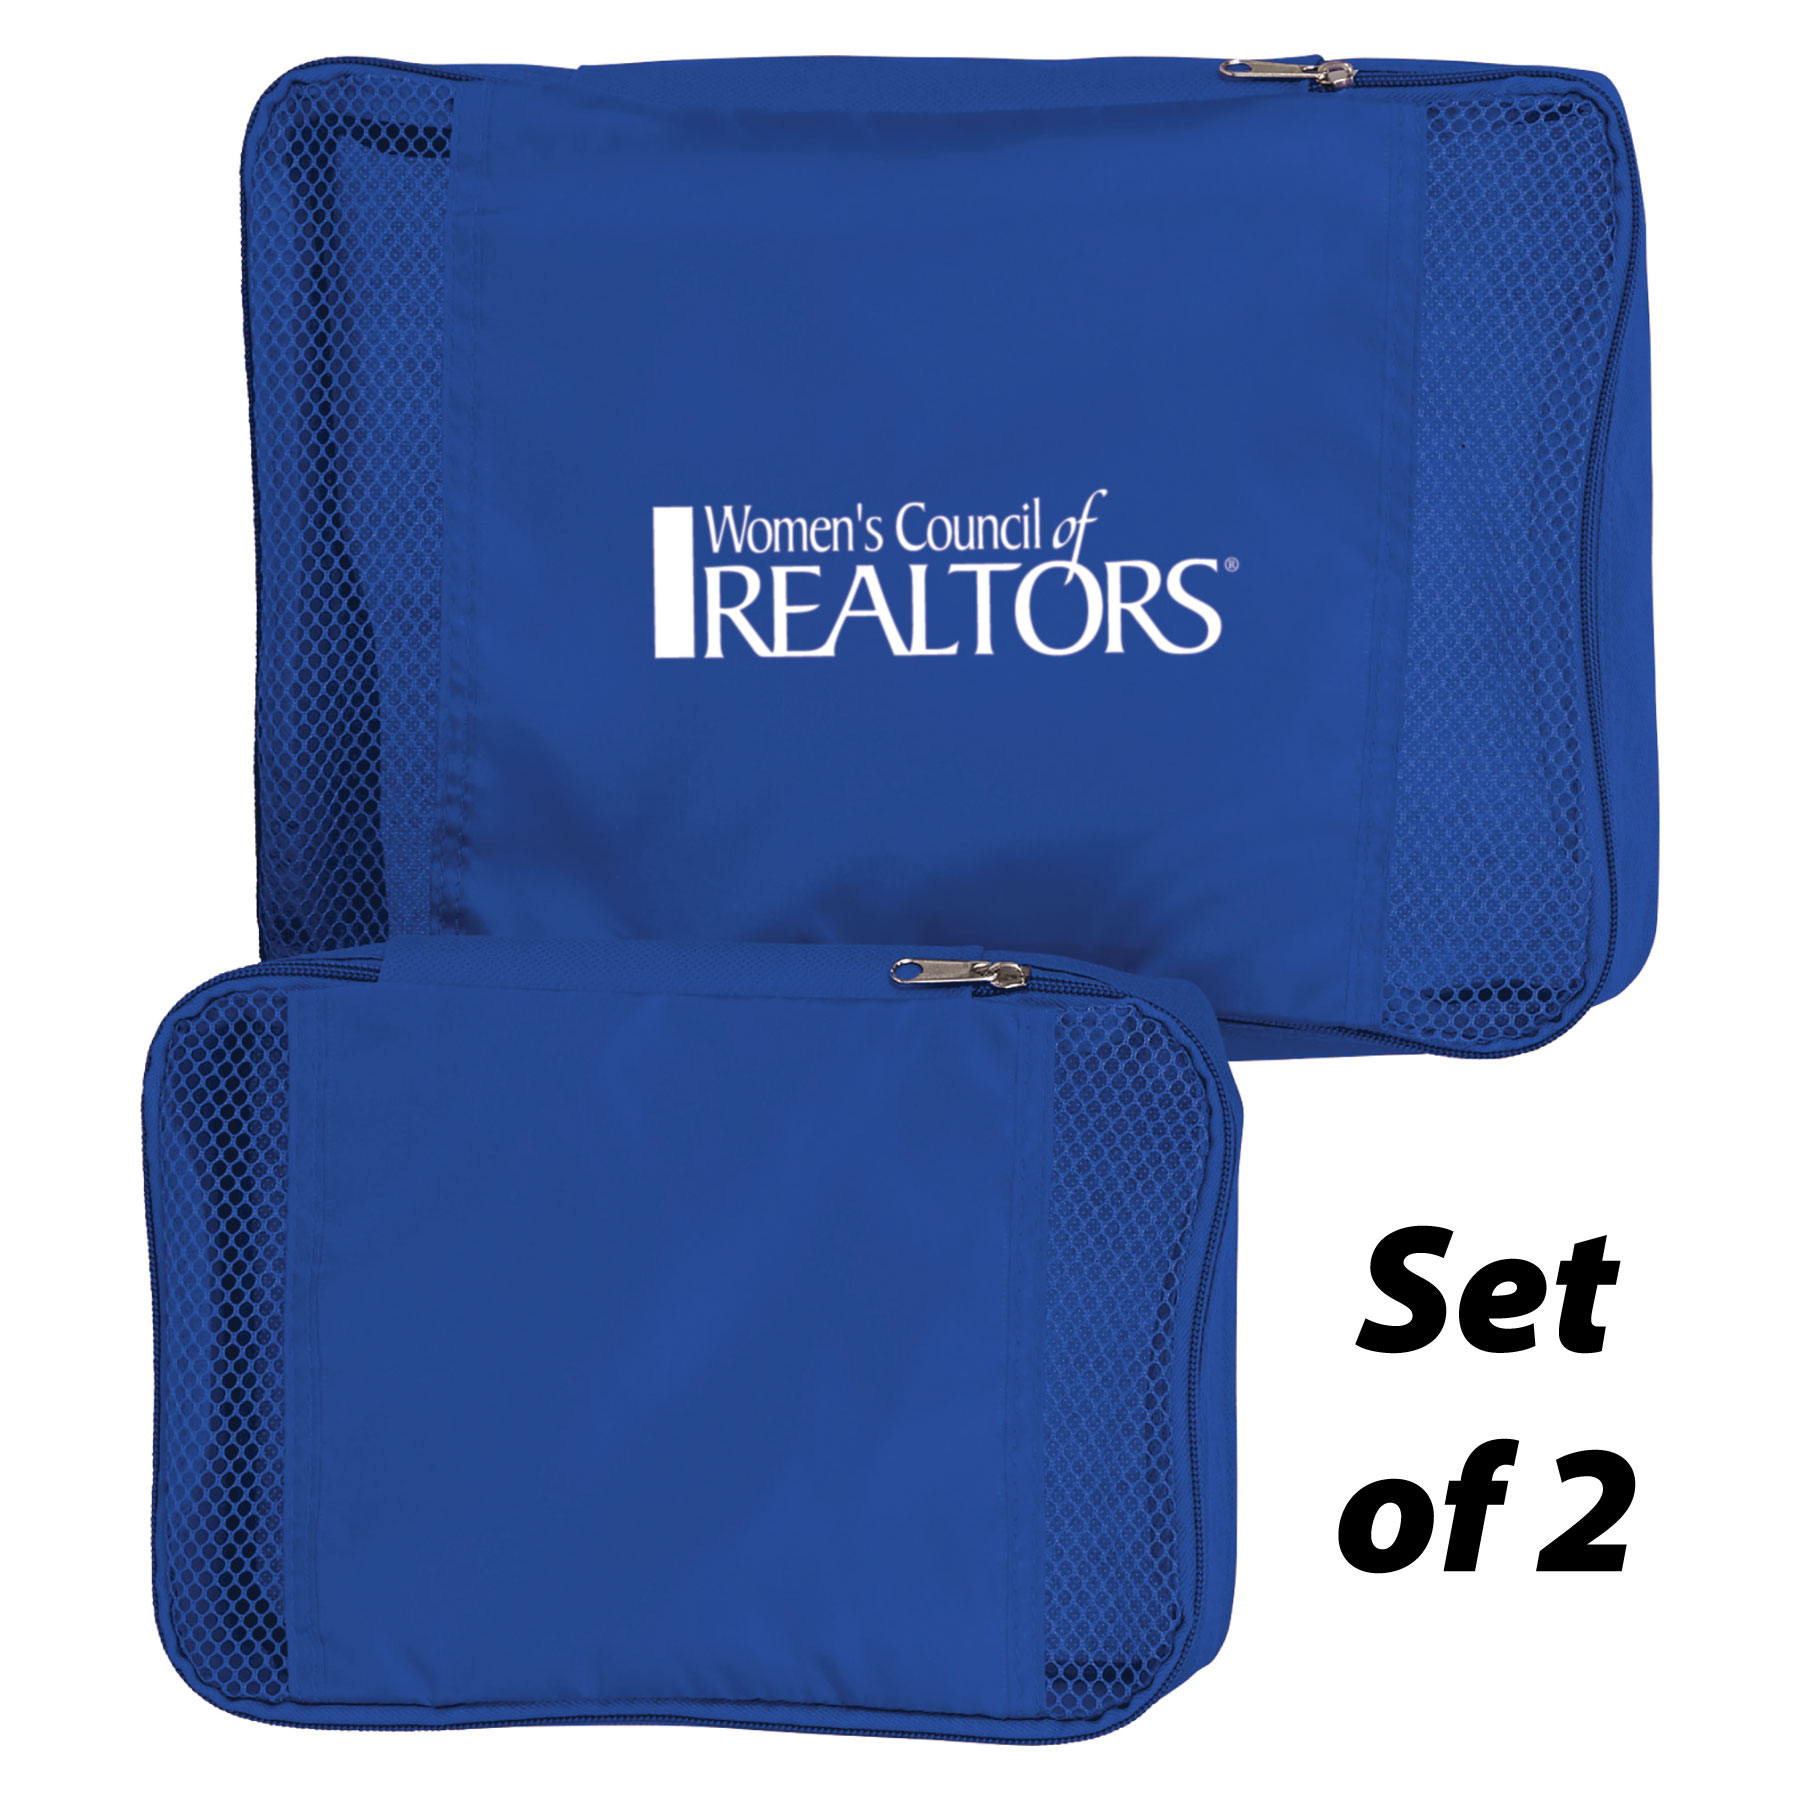 WCR Packing Cubes (Set of 2) Packings,Cubes,Cubs,Luggage,Show,Gifts